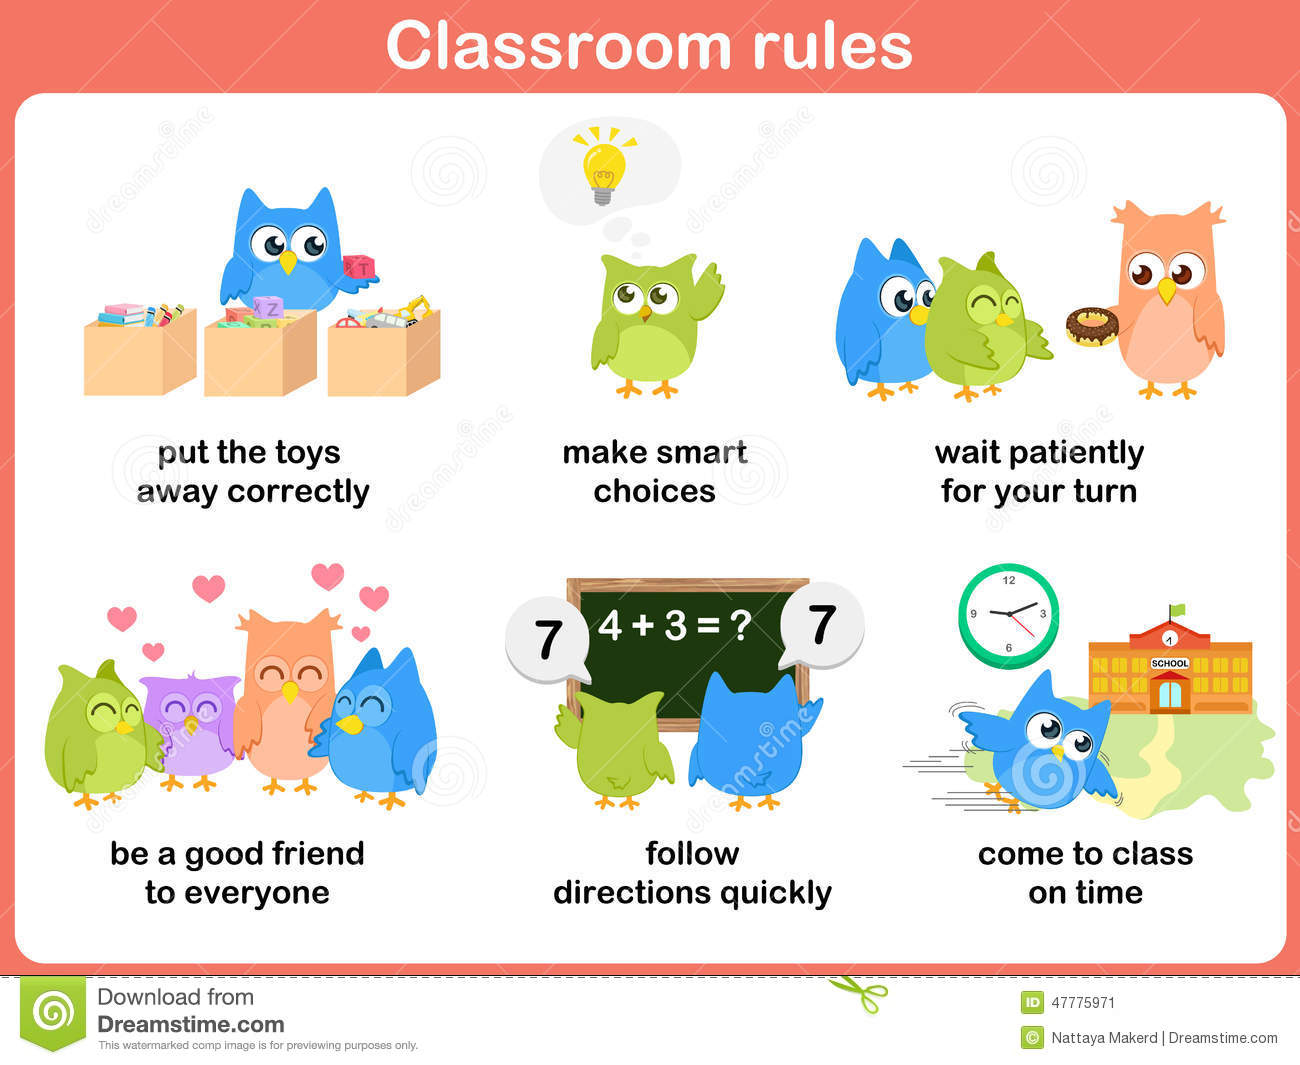 Kitchen Designers Jobs Classroom Rules For Kids Stock Vector Image 47775971